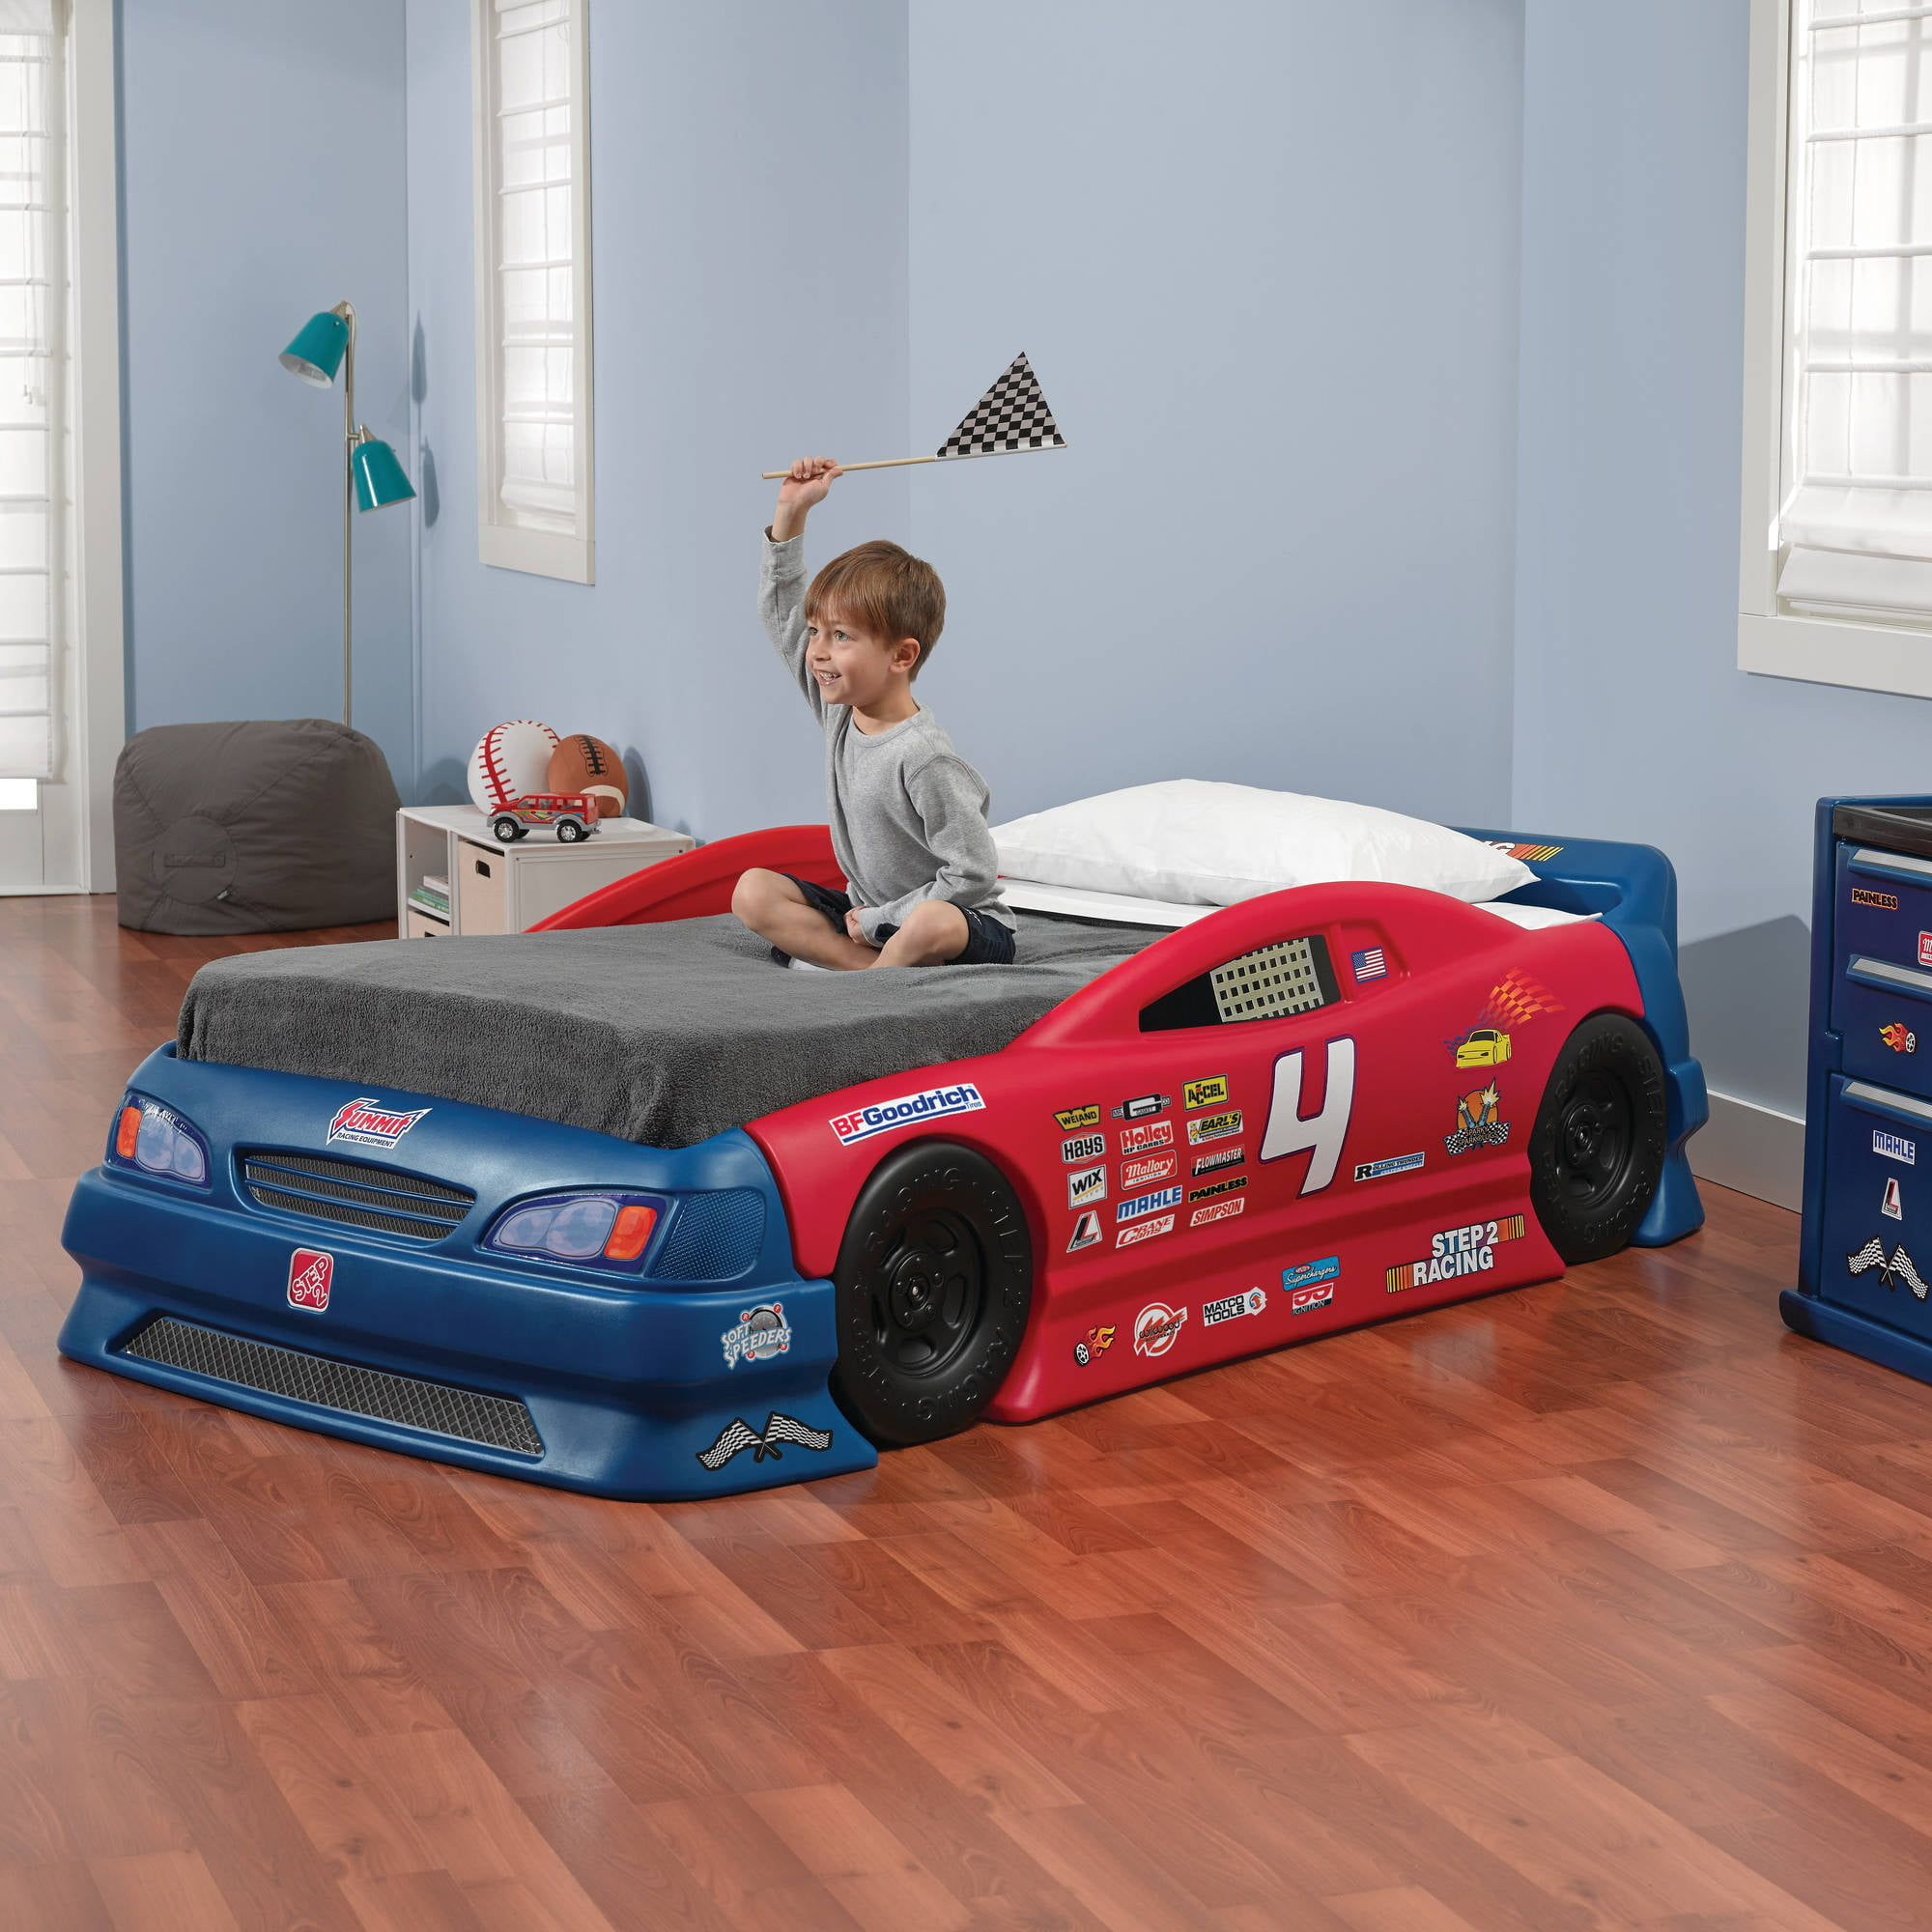 Nascar Bedroom Furniture Step2 Stock Car Convertible Toddler To Twin Bed And Mattress .